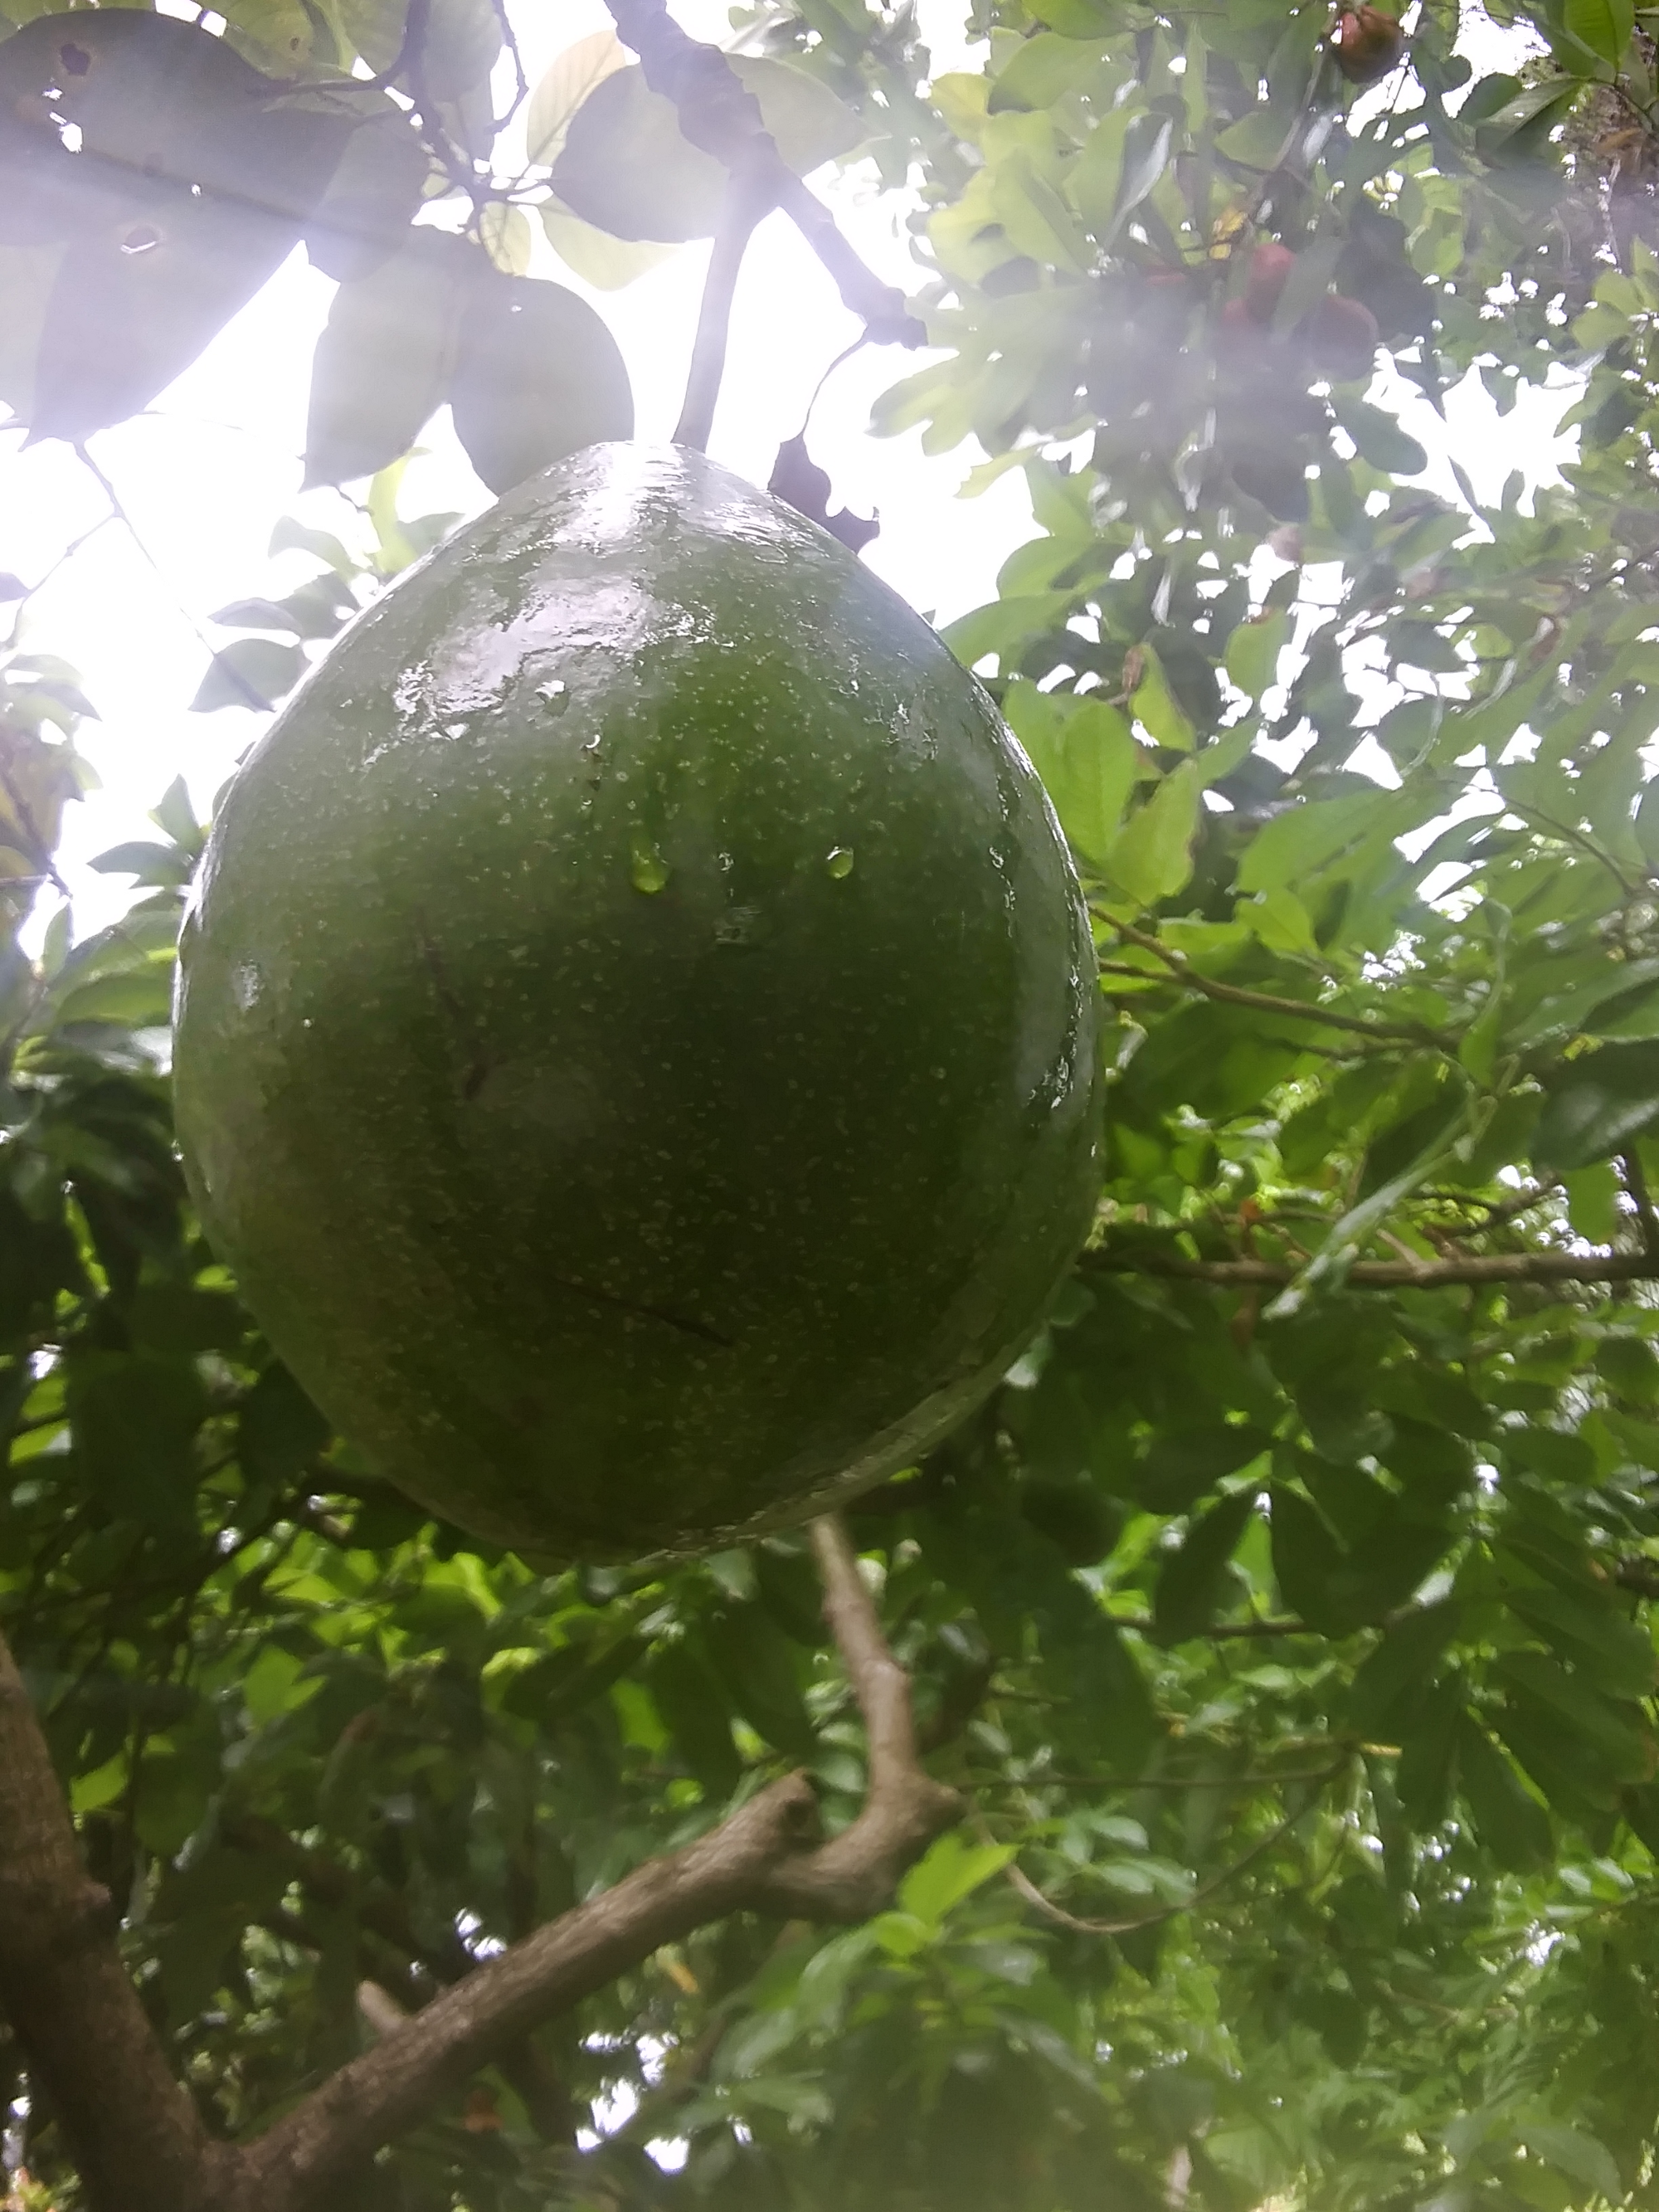 beautiful avocado fruit hanging from a tree with droplets from recent rain visible on the skin